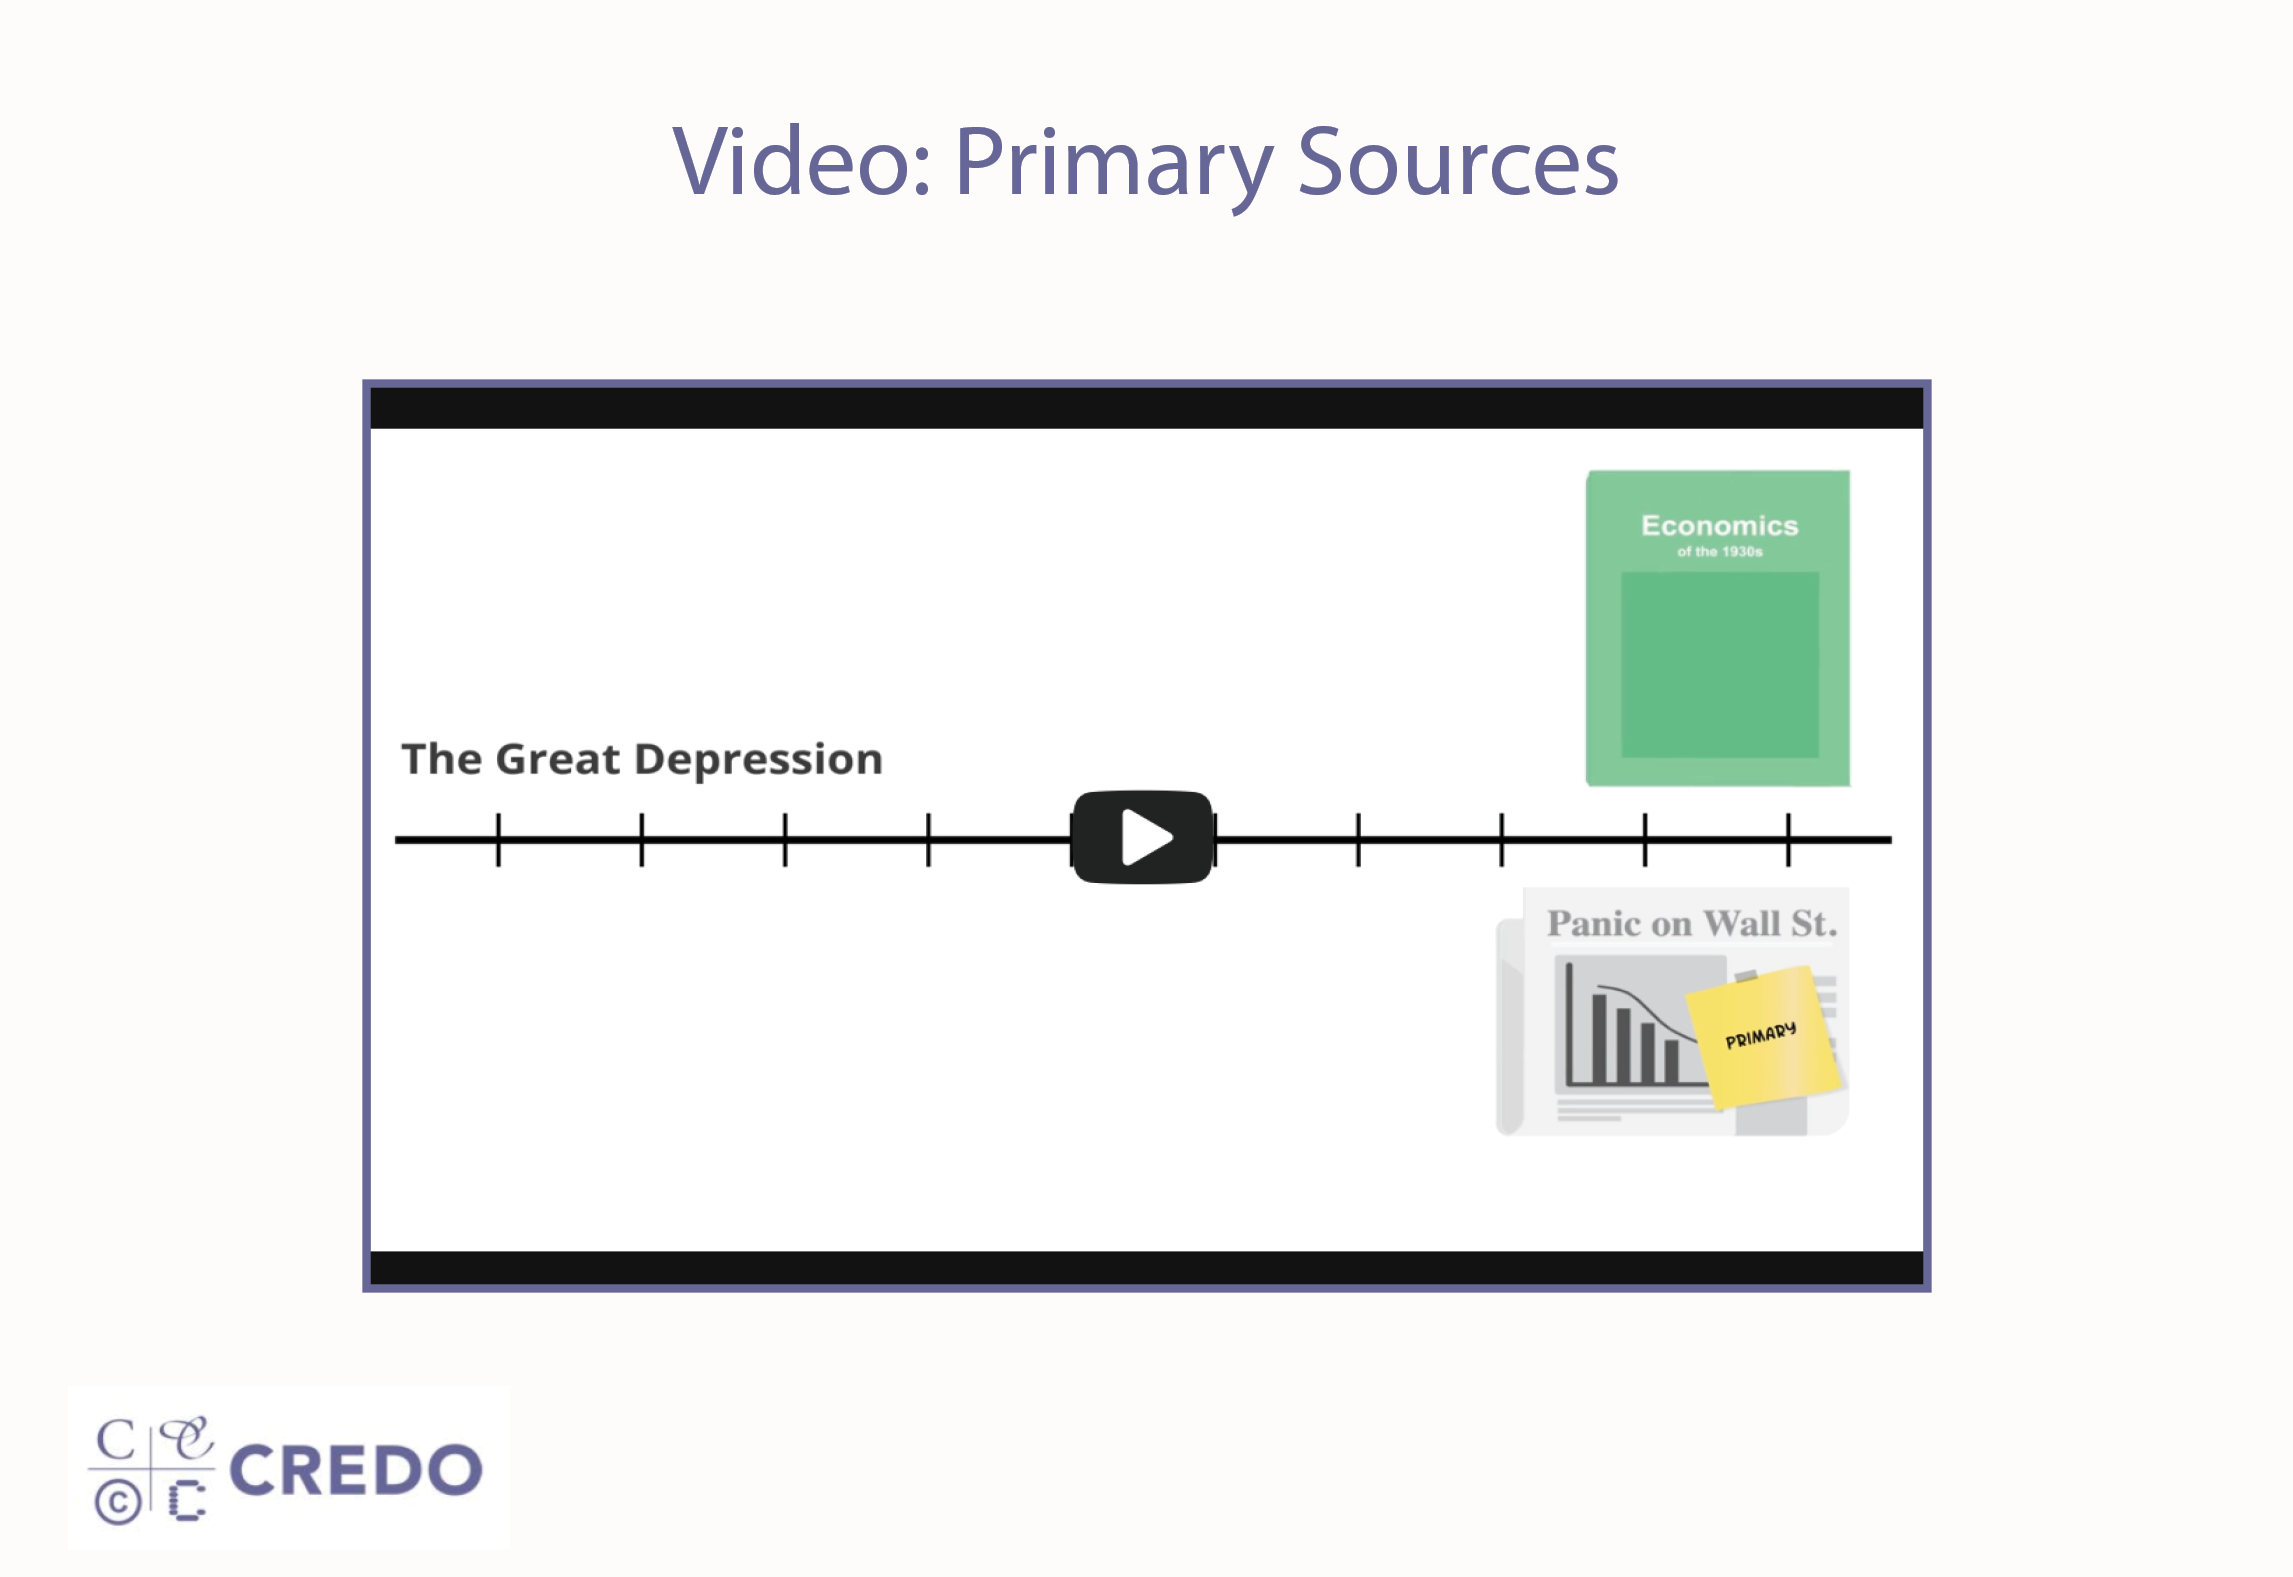 Video: Primary Sources